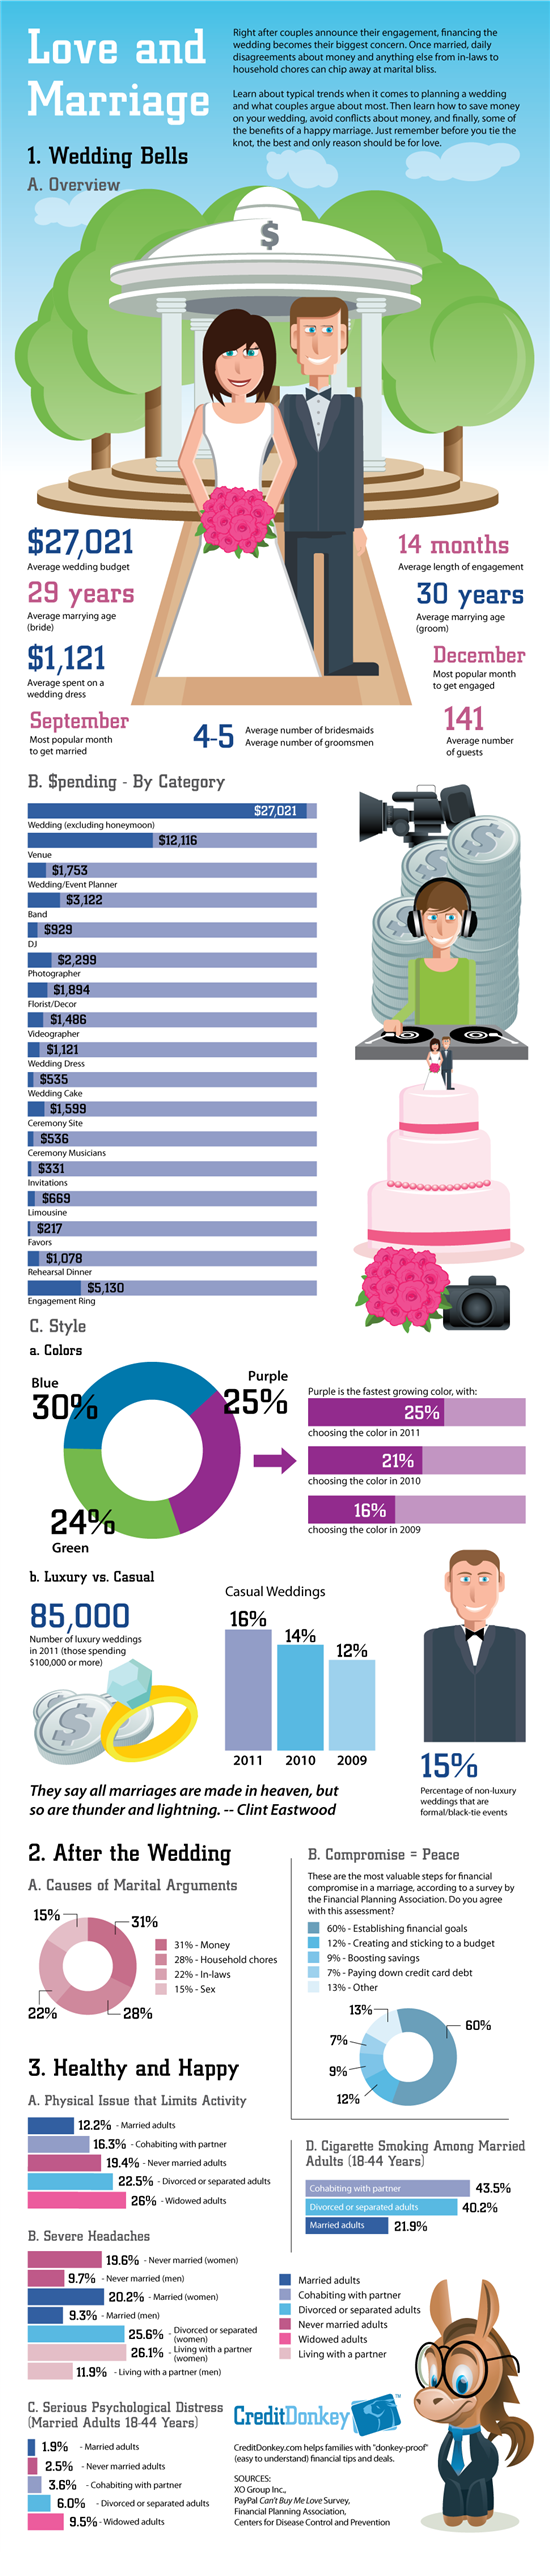 Infographic: Love and Marriage